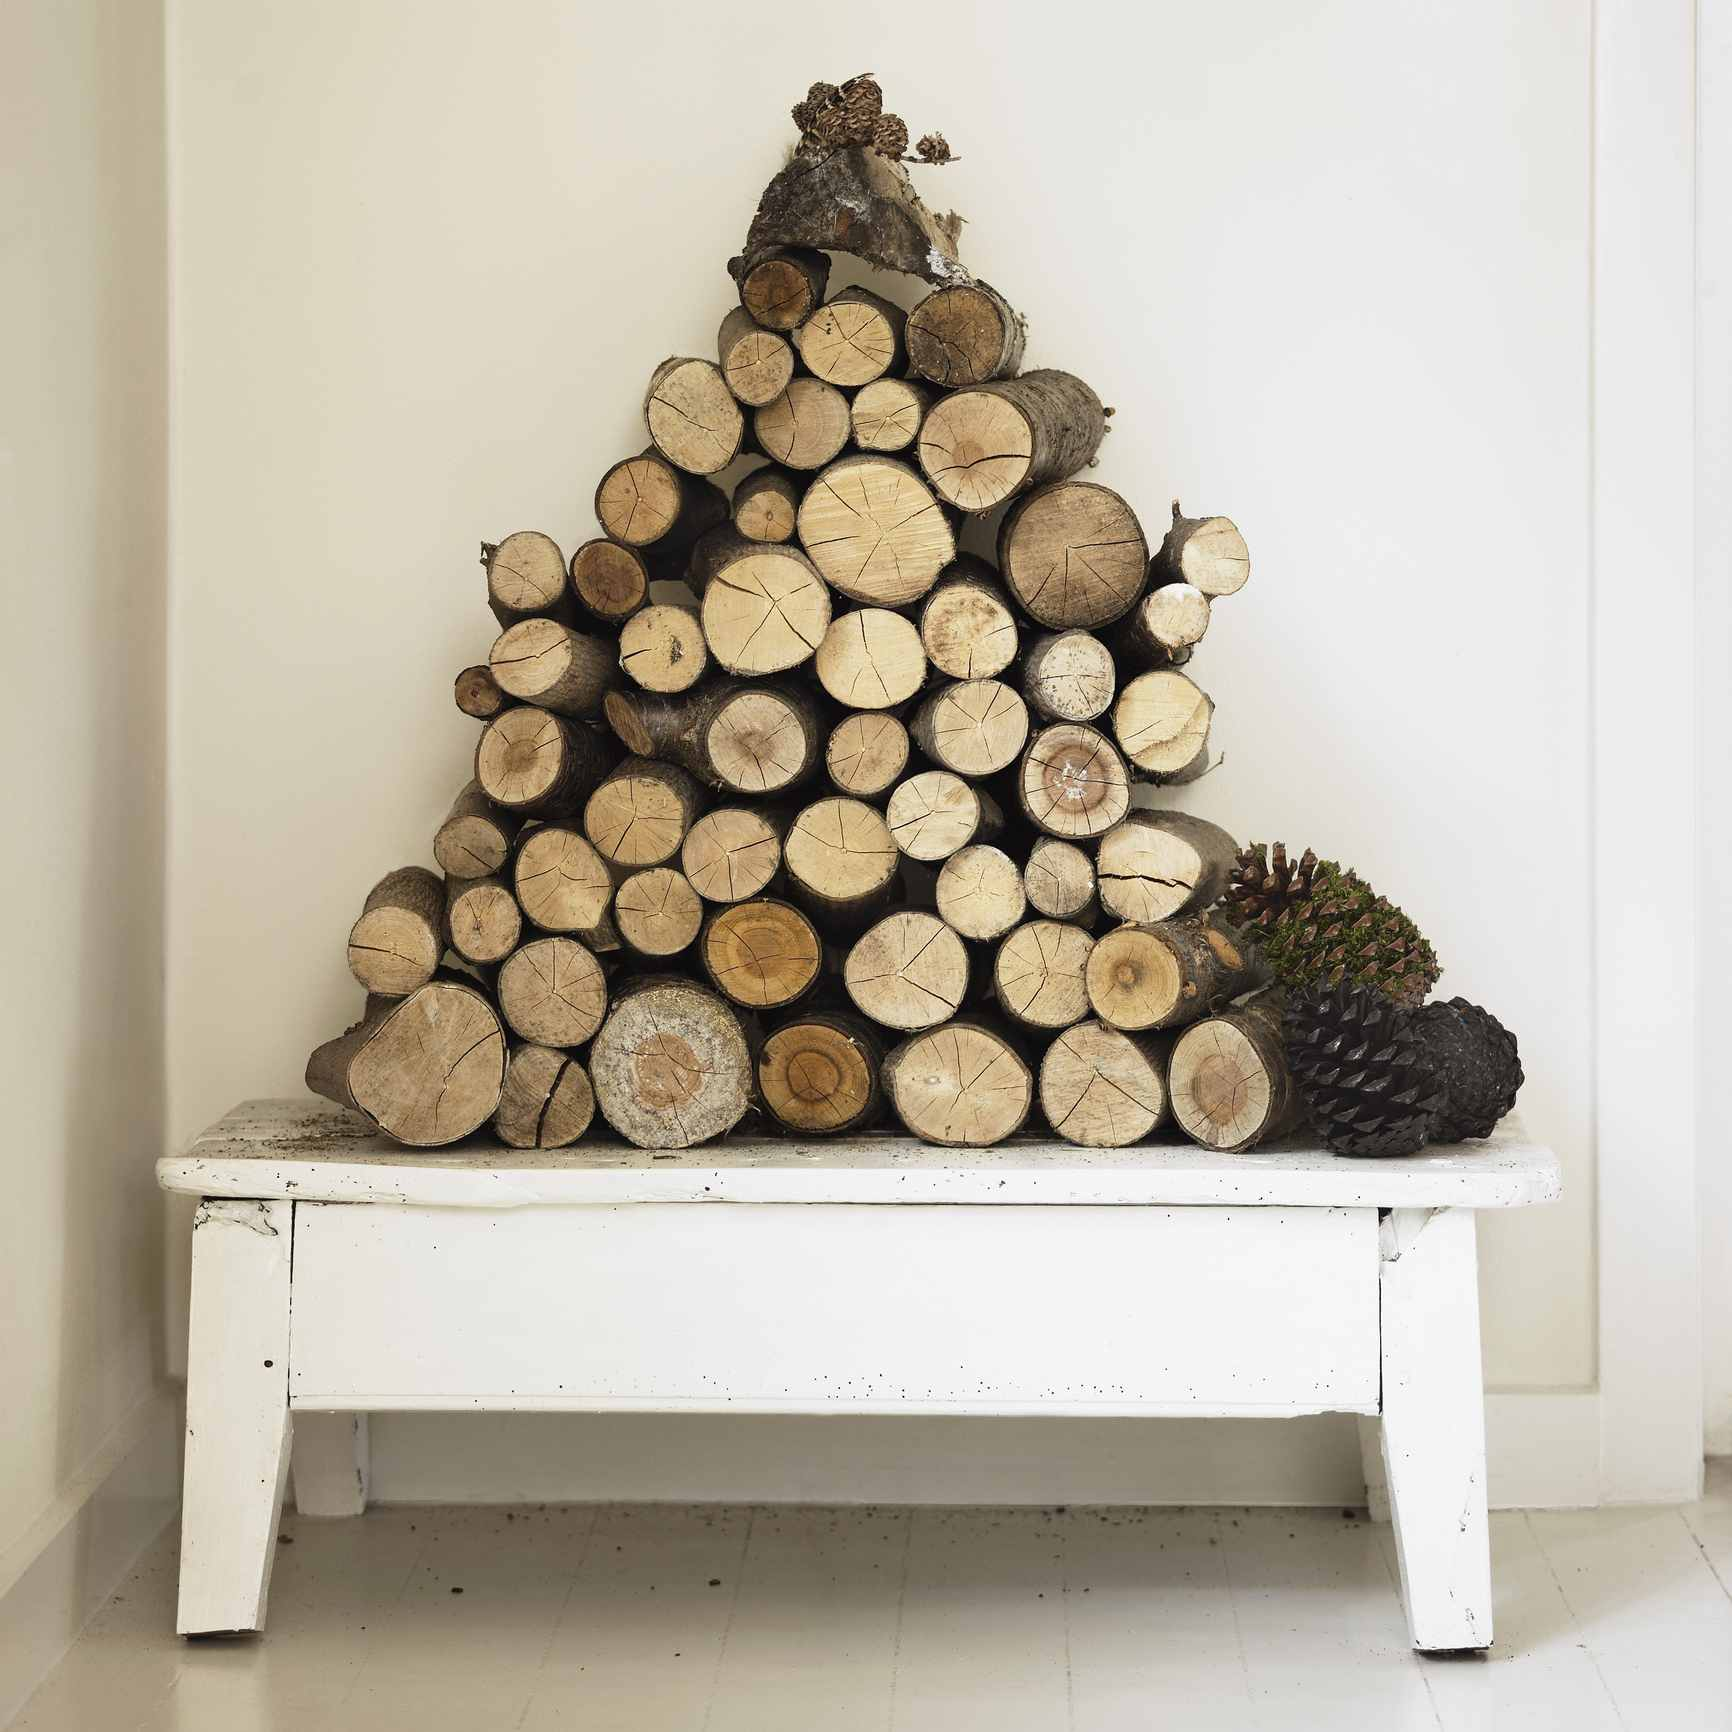 Artfully displayed logs